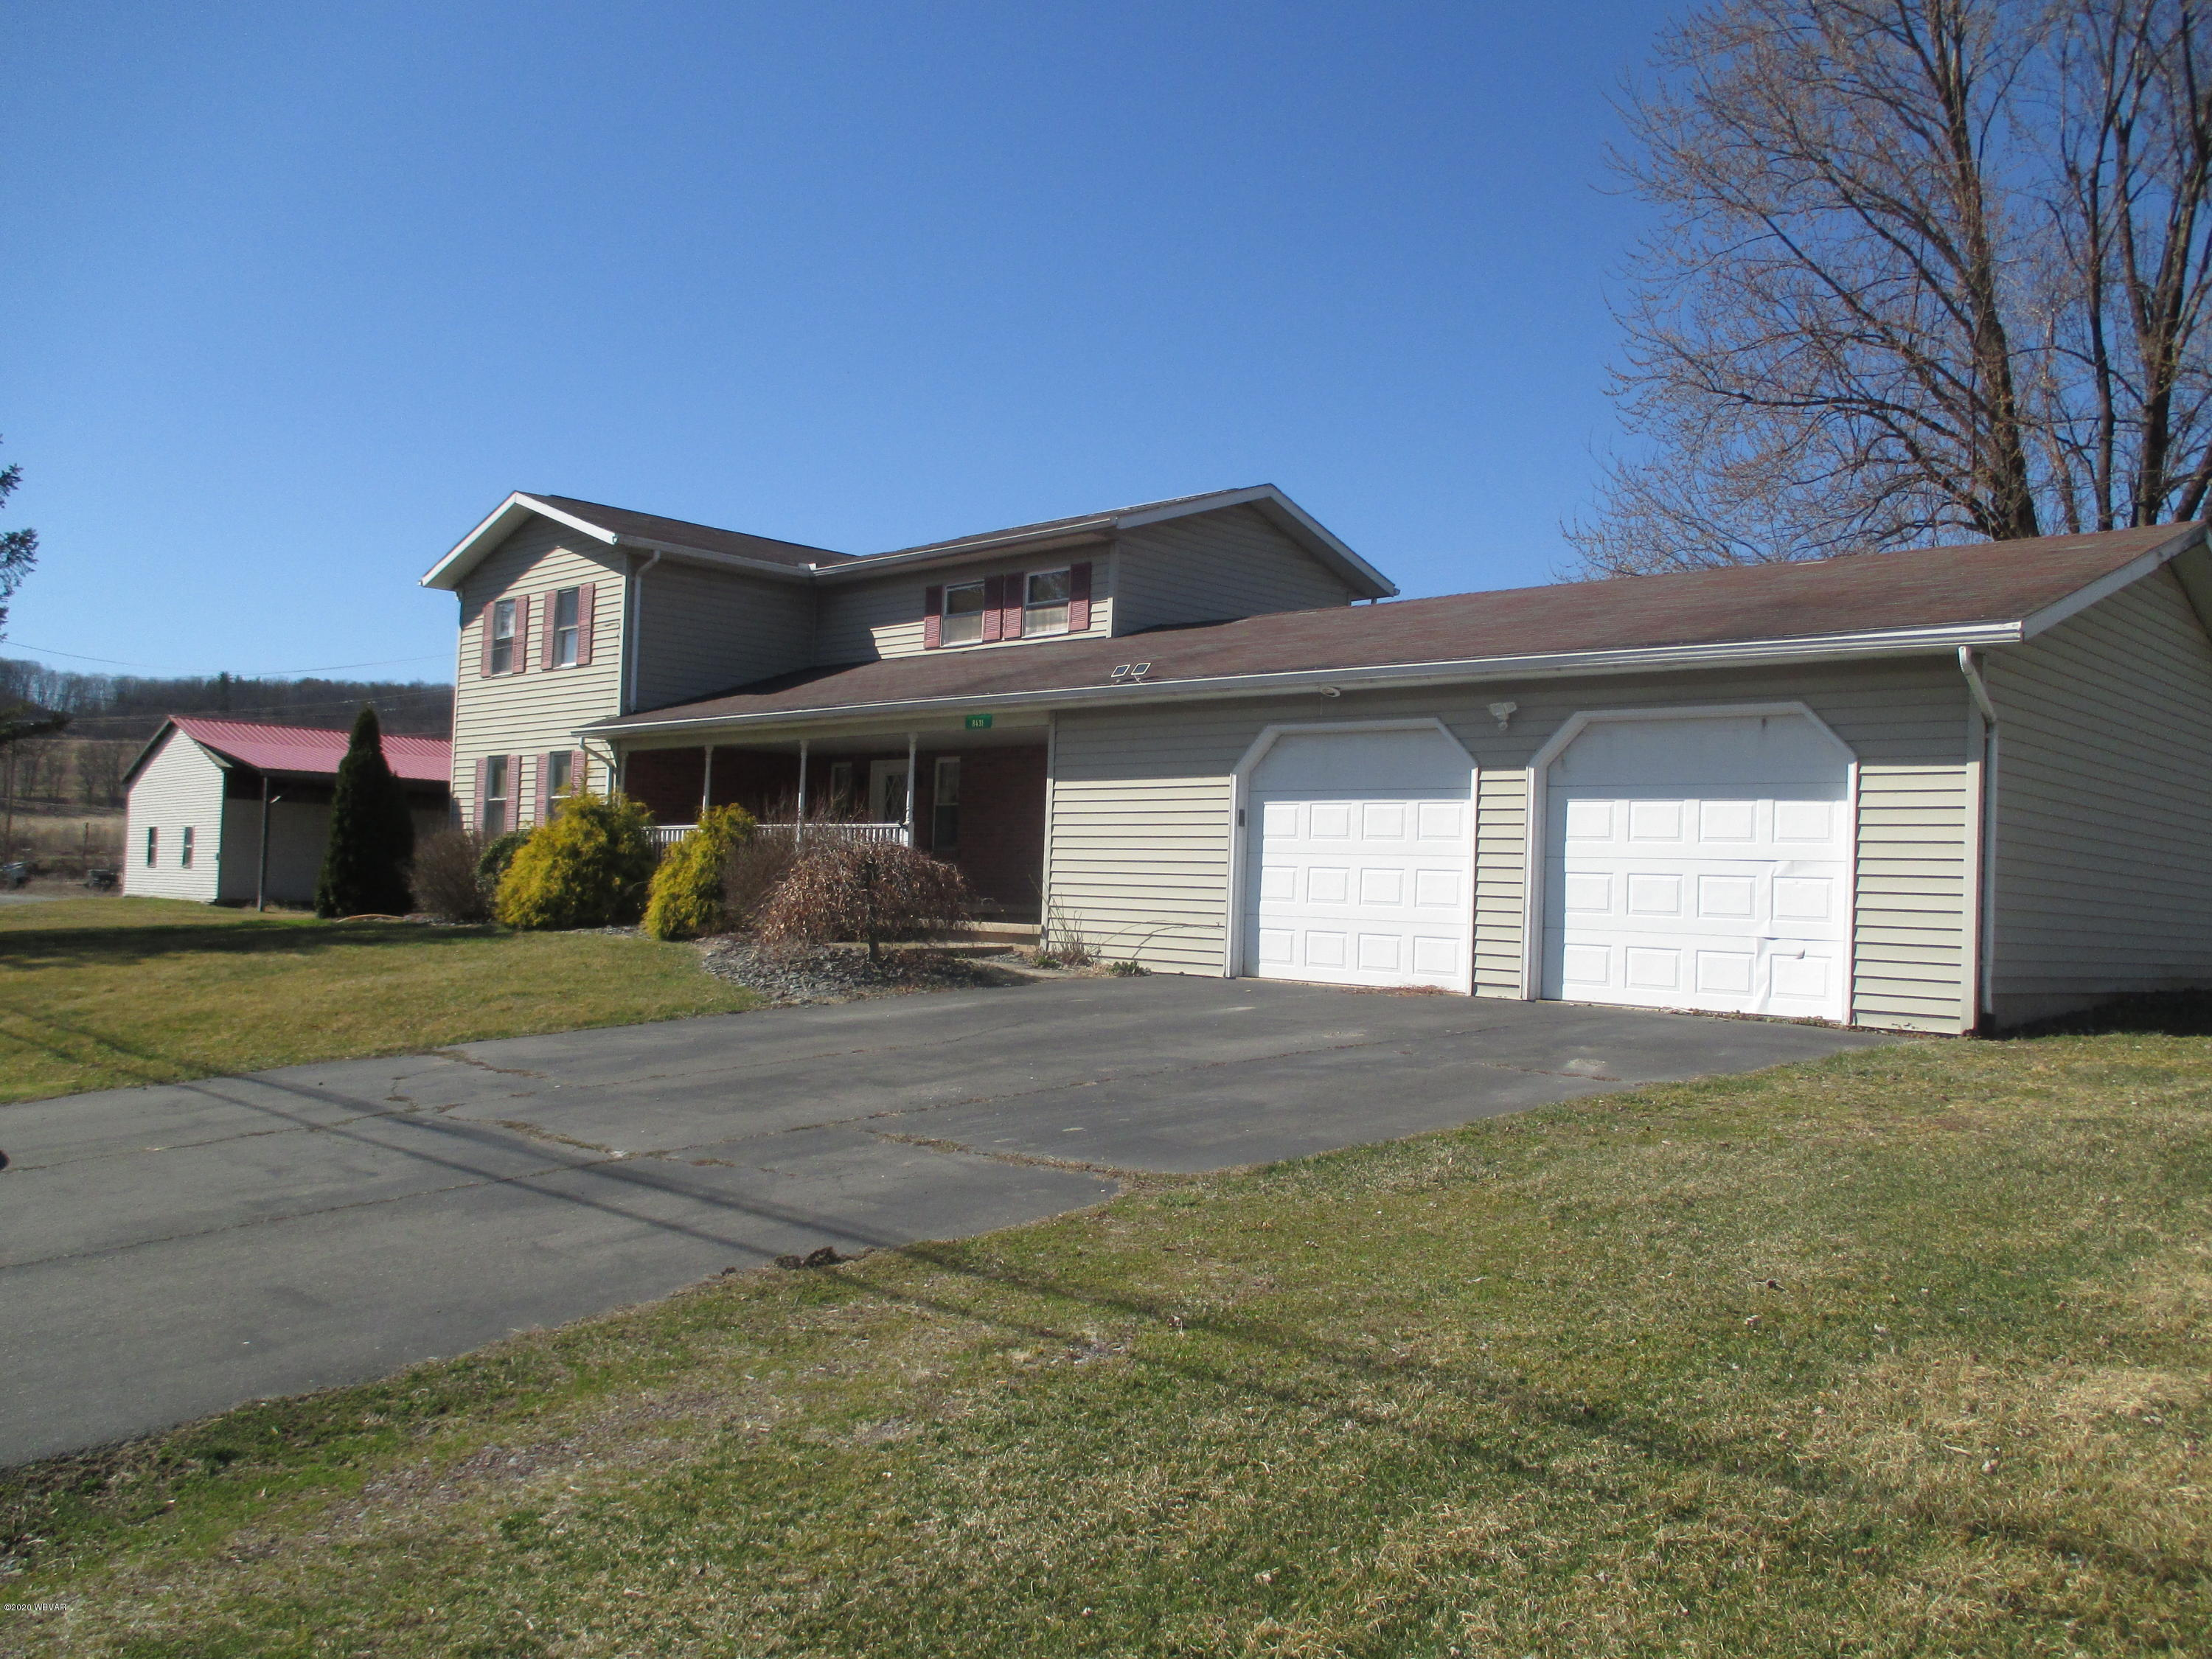 8431 ROUTE 414 HIGHWAY,Canton,PA 17724,3 Bedrooms Bedrooms,2 BathroomsBathrooms,Residential,ROUTE 414,WB-89829